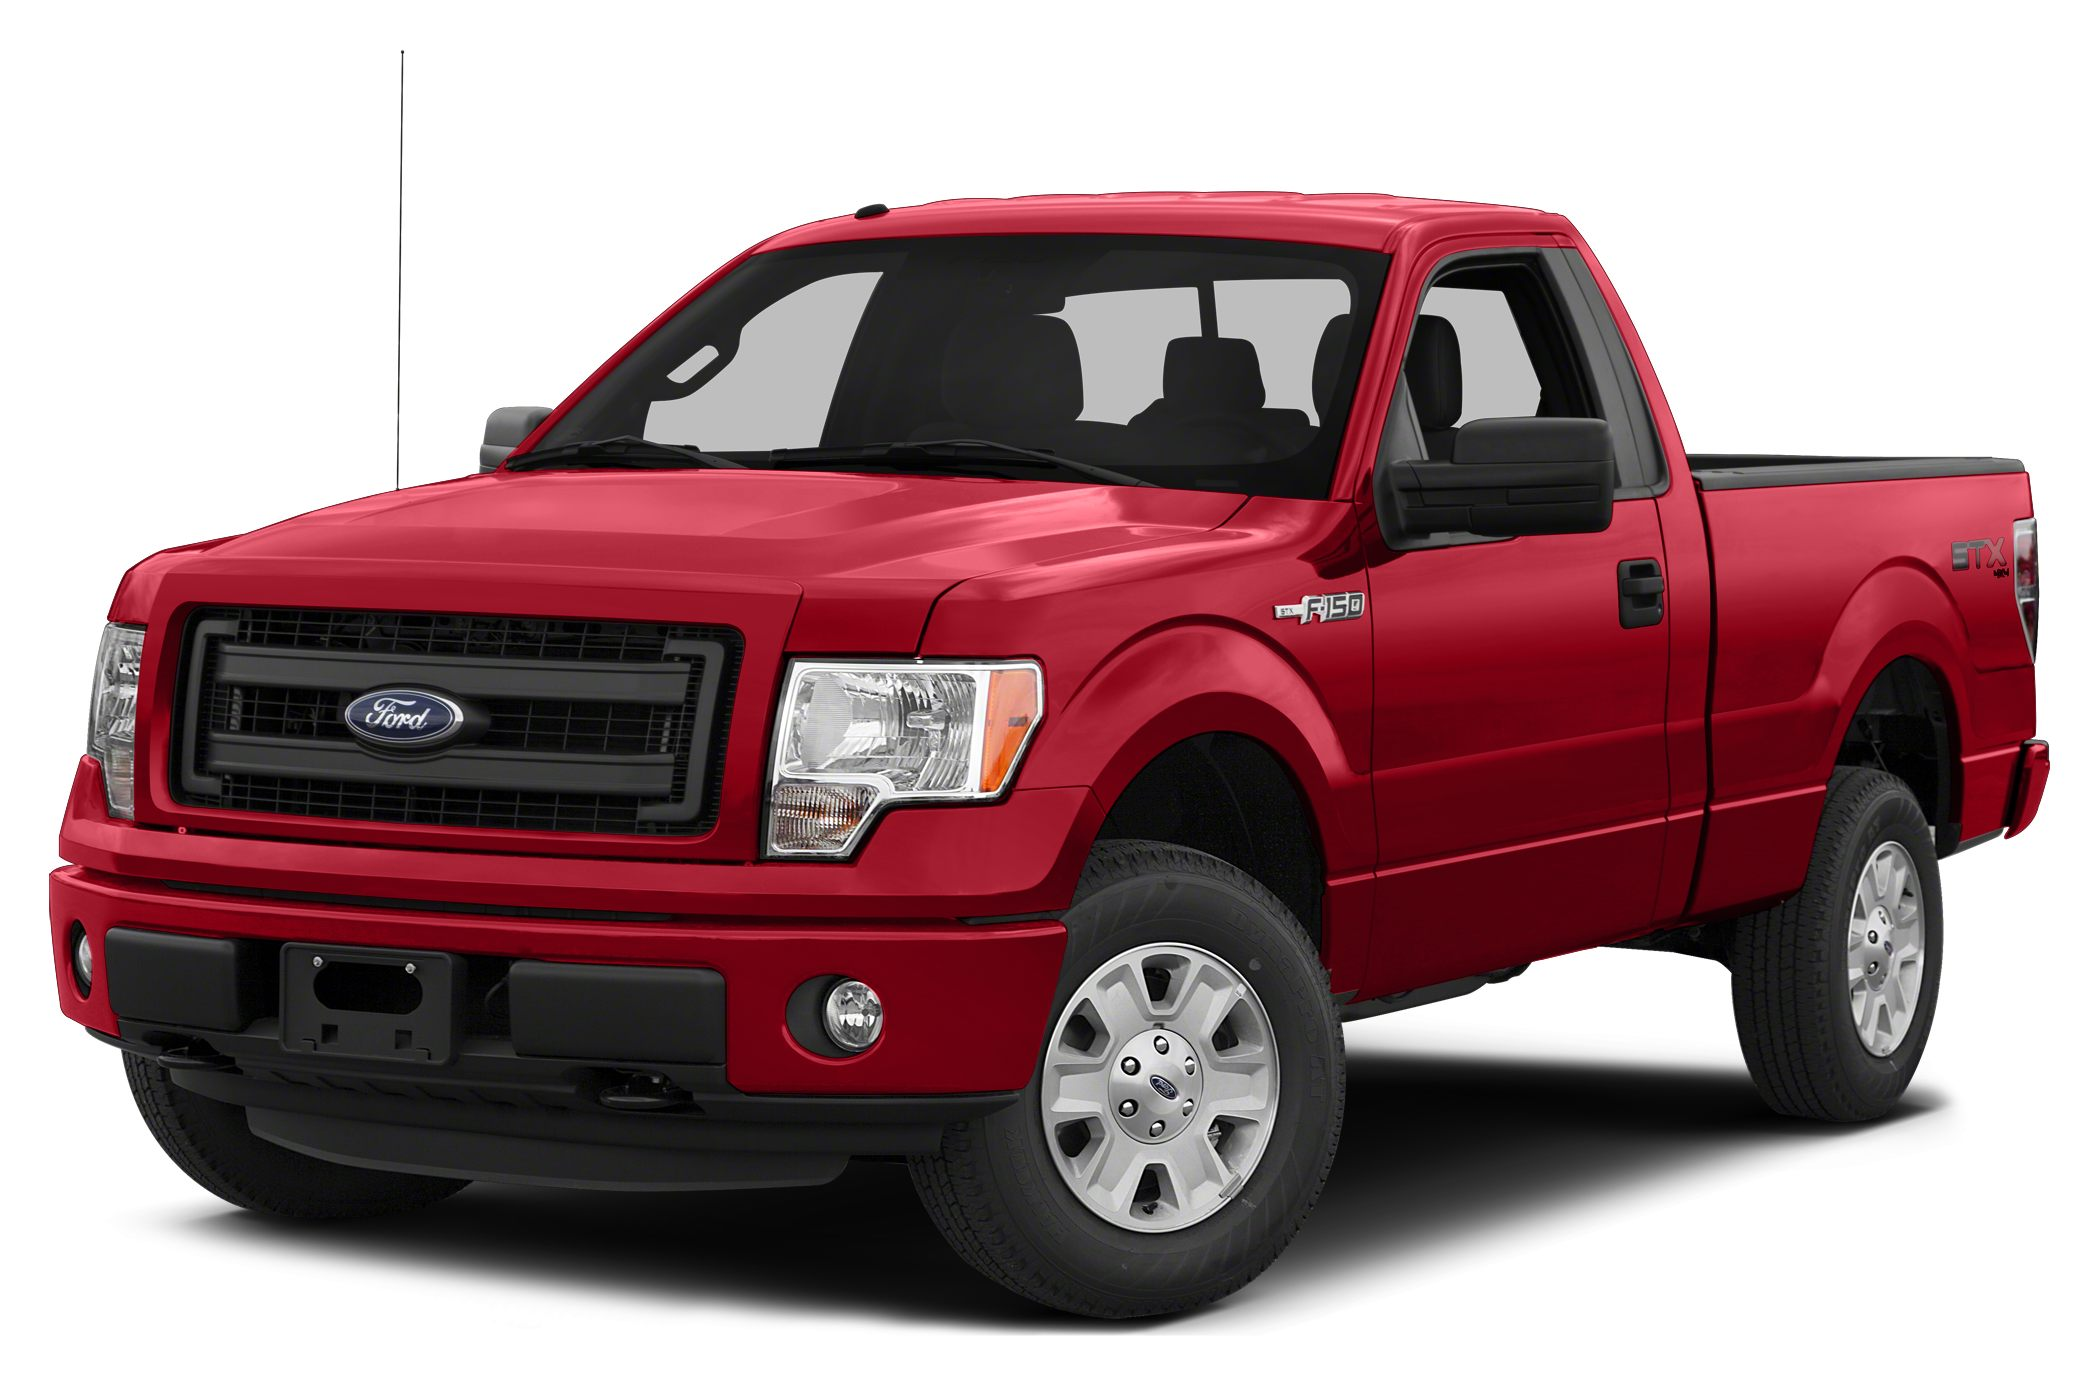 2014 Ford F150 XLT Extended Cab Pickup for sale in Virginia Beach for $36,490 with 3 miles.